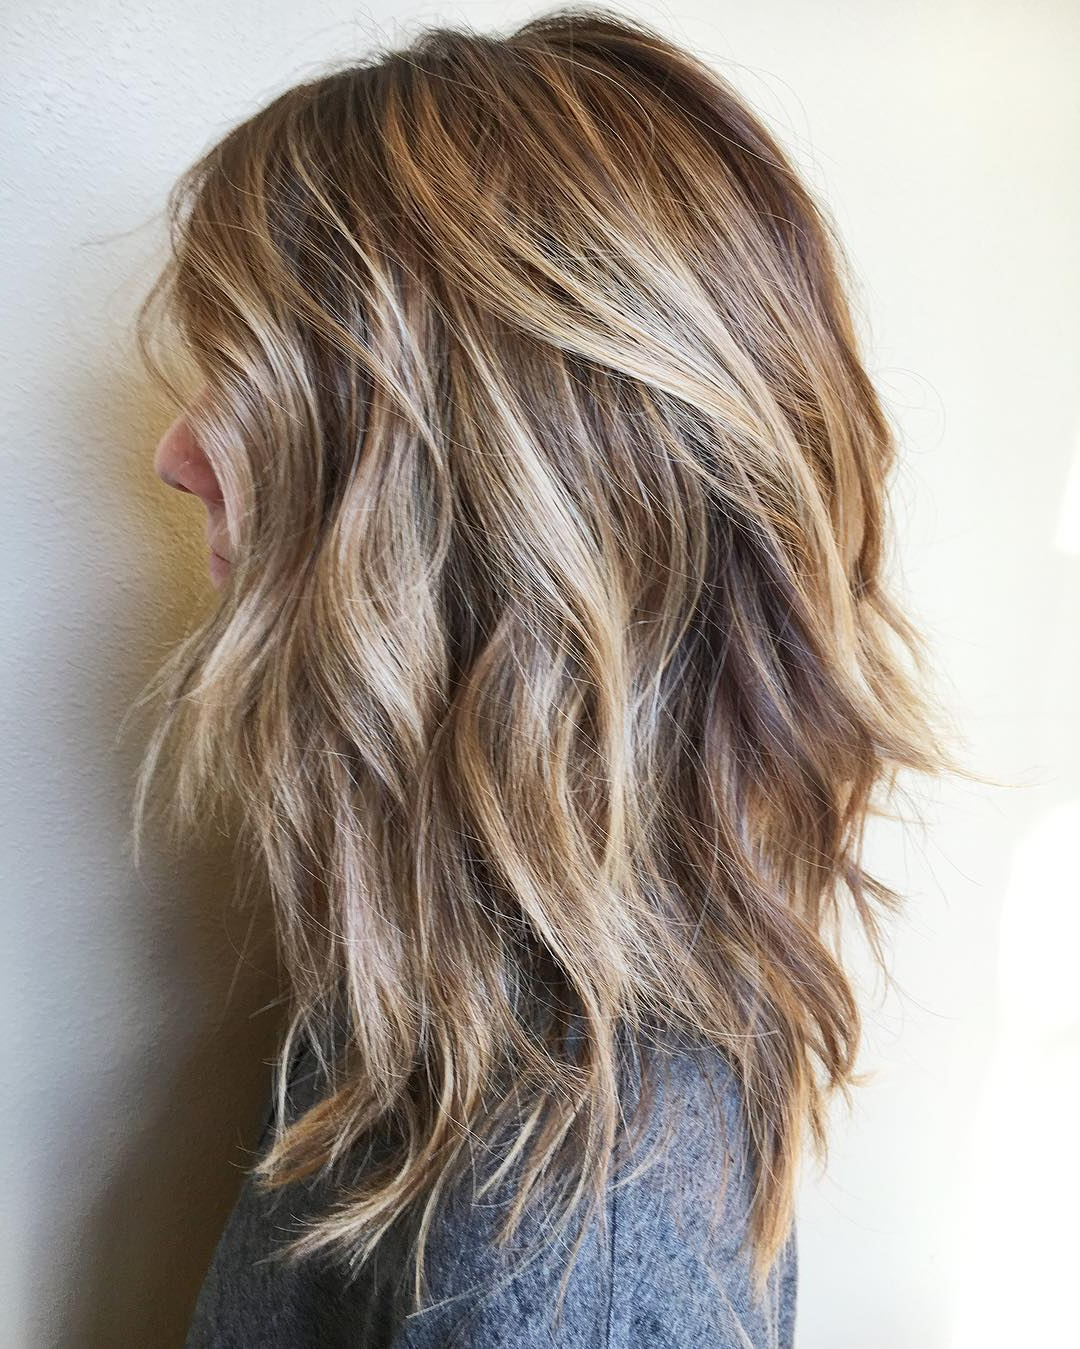 10 Messy Medium Hairstyles For Thick Hair 2019 In Most Current Uneven Layered Bob Hairstyles For Thick Hair (View 7 of 20)